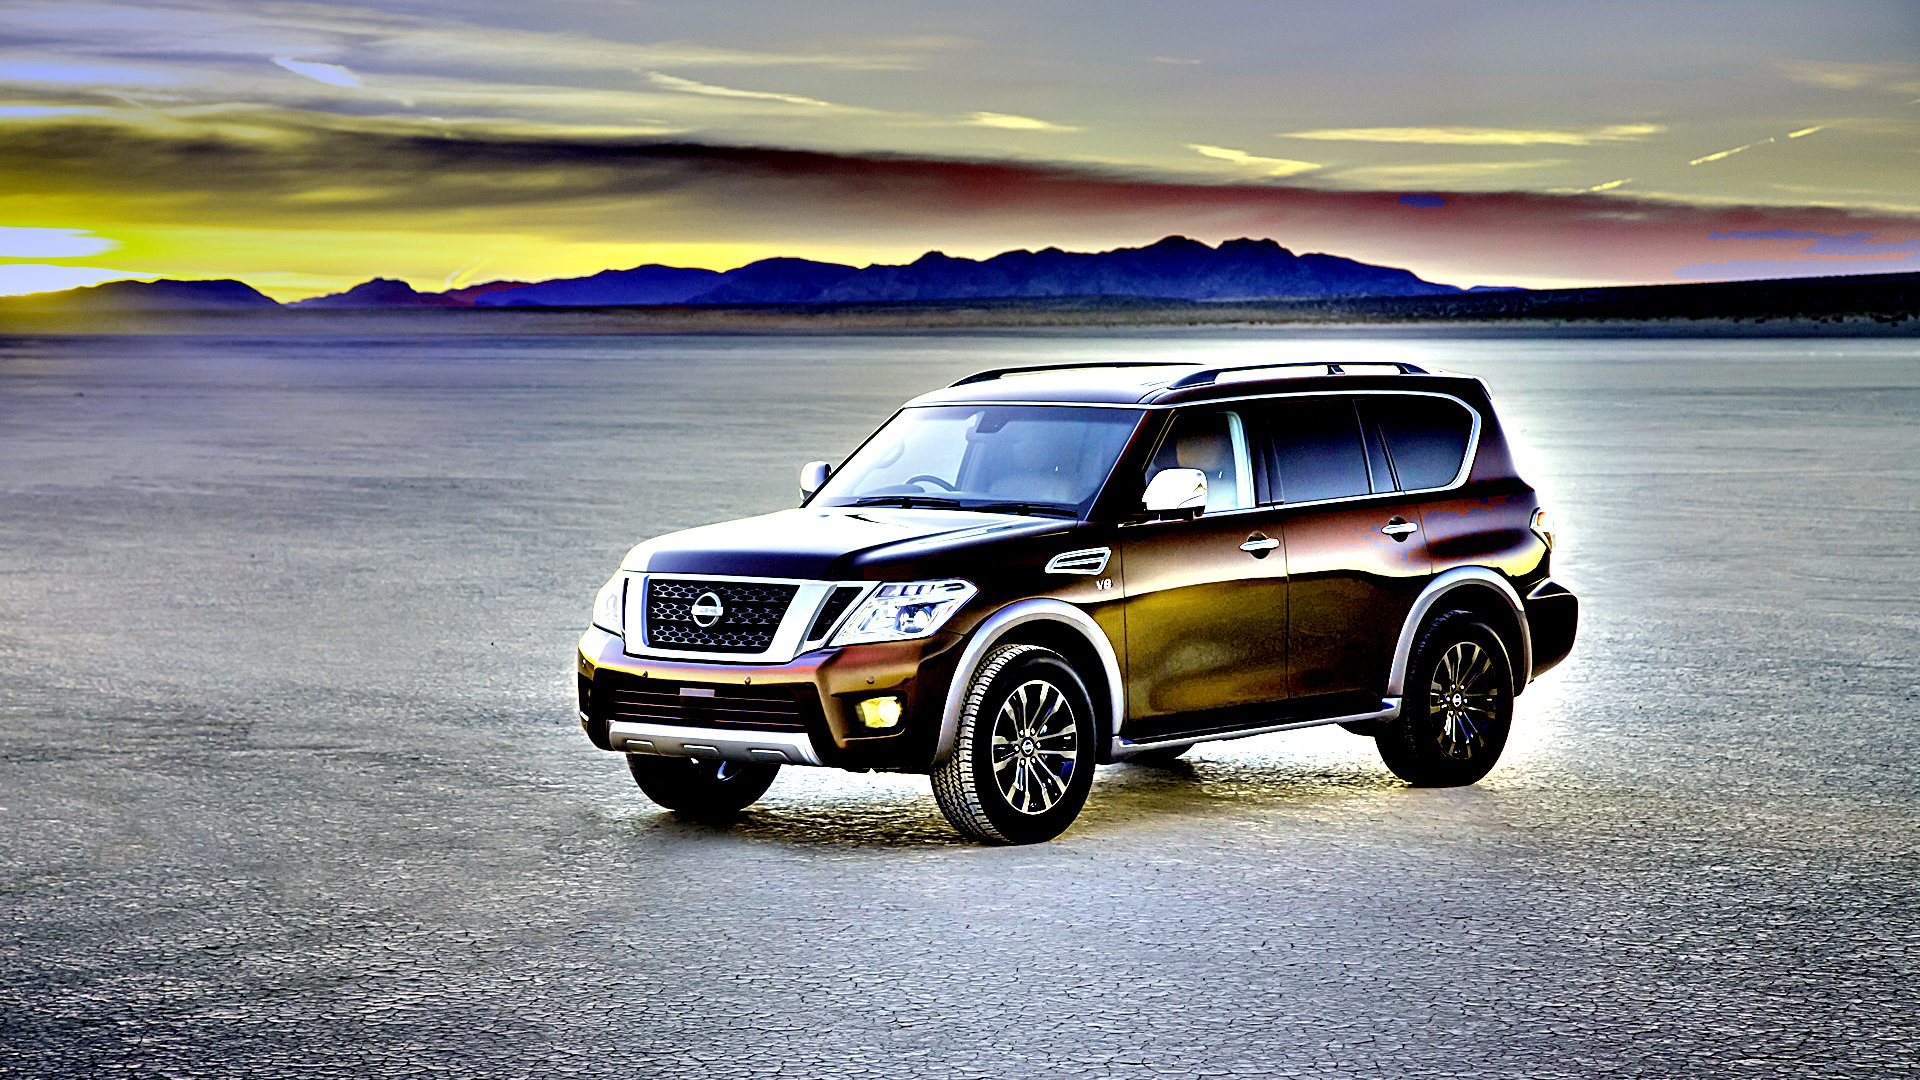 New 2019 Nissan Armada Wallpaper HD Desktop